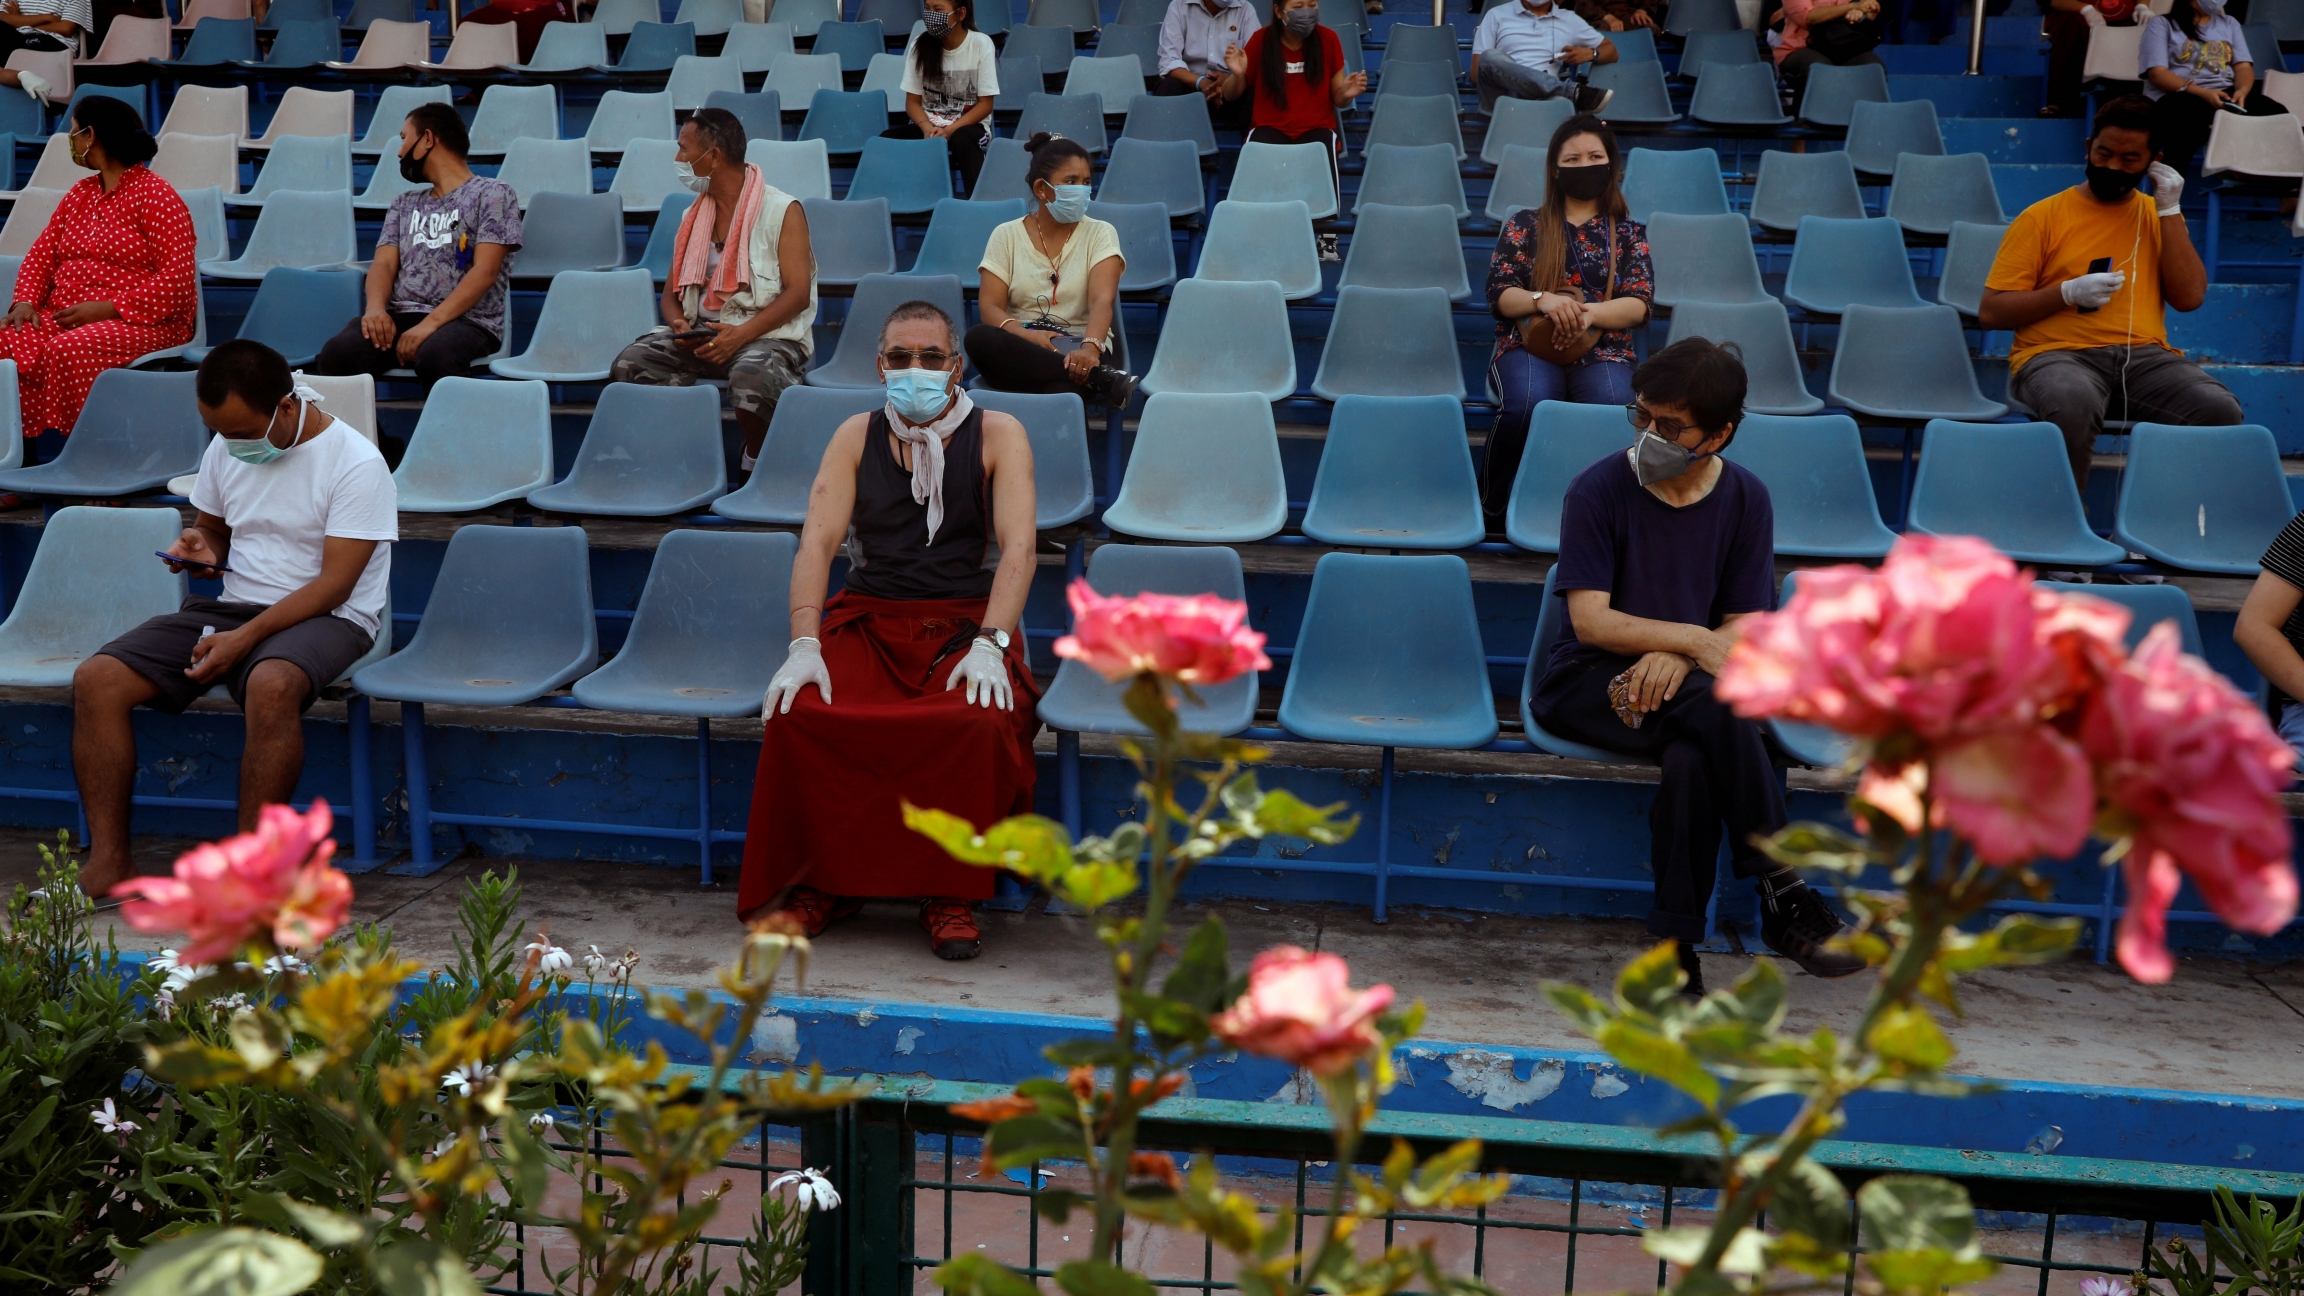 Stranded residents of Ladakh, a union territory in India, wait in a stadium for being thermal screened before taking buses back to Ladakh, after few restrictions were lifted by Delhi government during an extended nationwide lockdown to slow the spread of